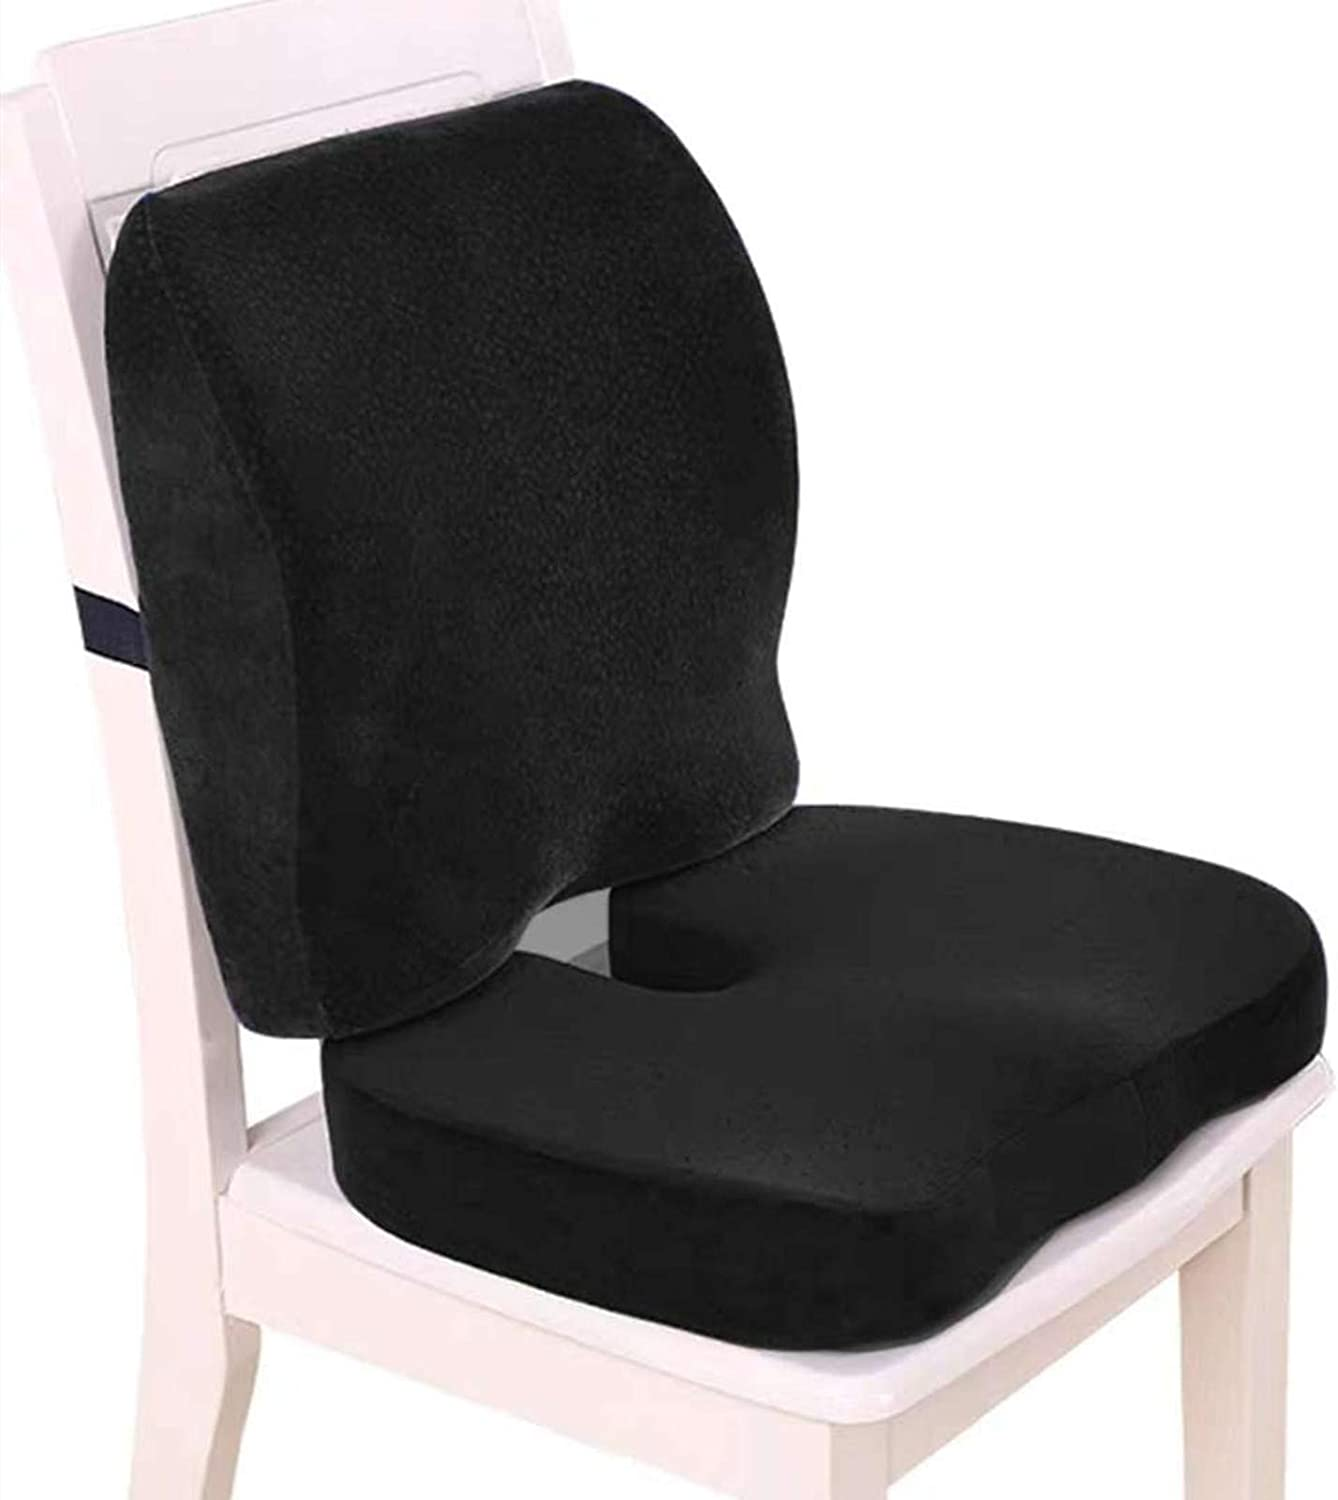 Memory Foam Seat Cushion and Lumbar Support for Office Chair, Desk Chair Cushions Ergonomically Designed for Coccyx, Tailbone, Butt and Lower Back